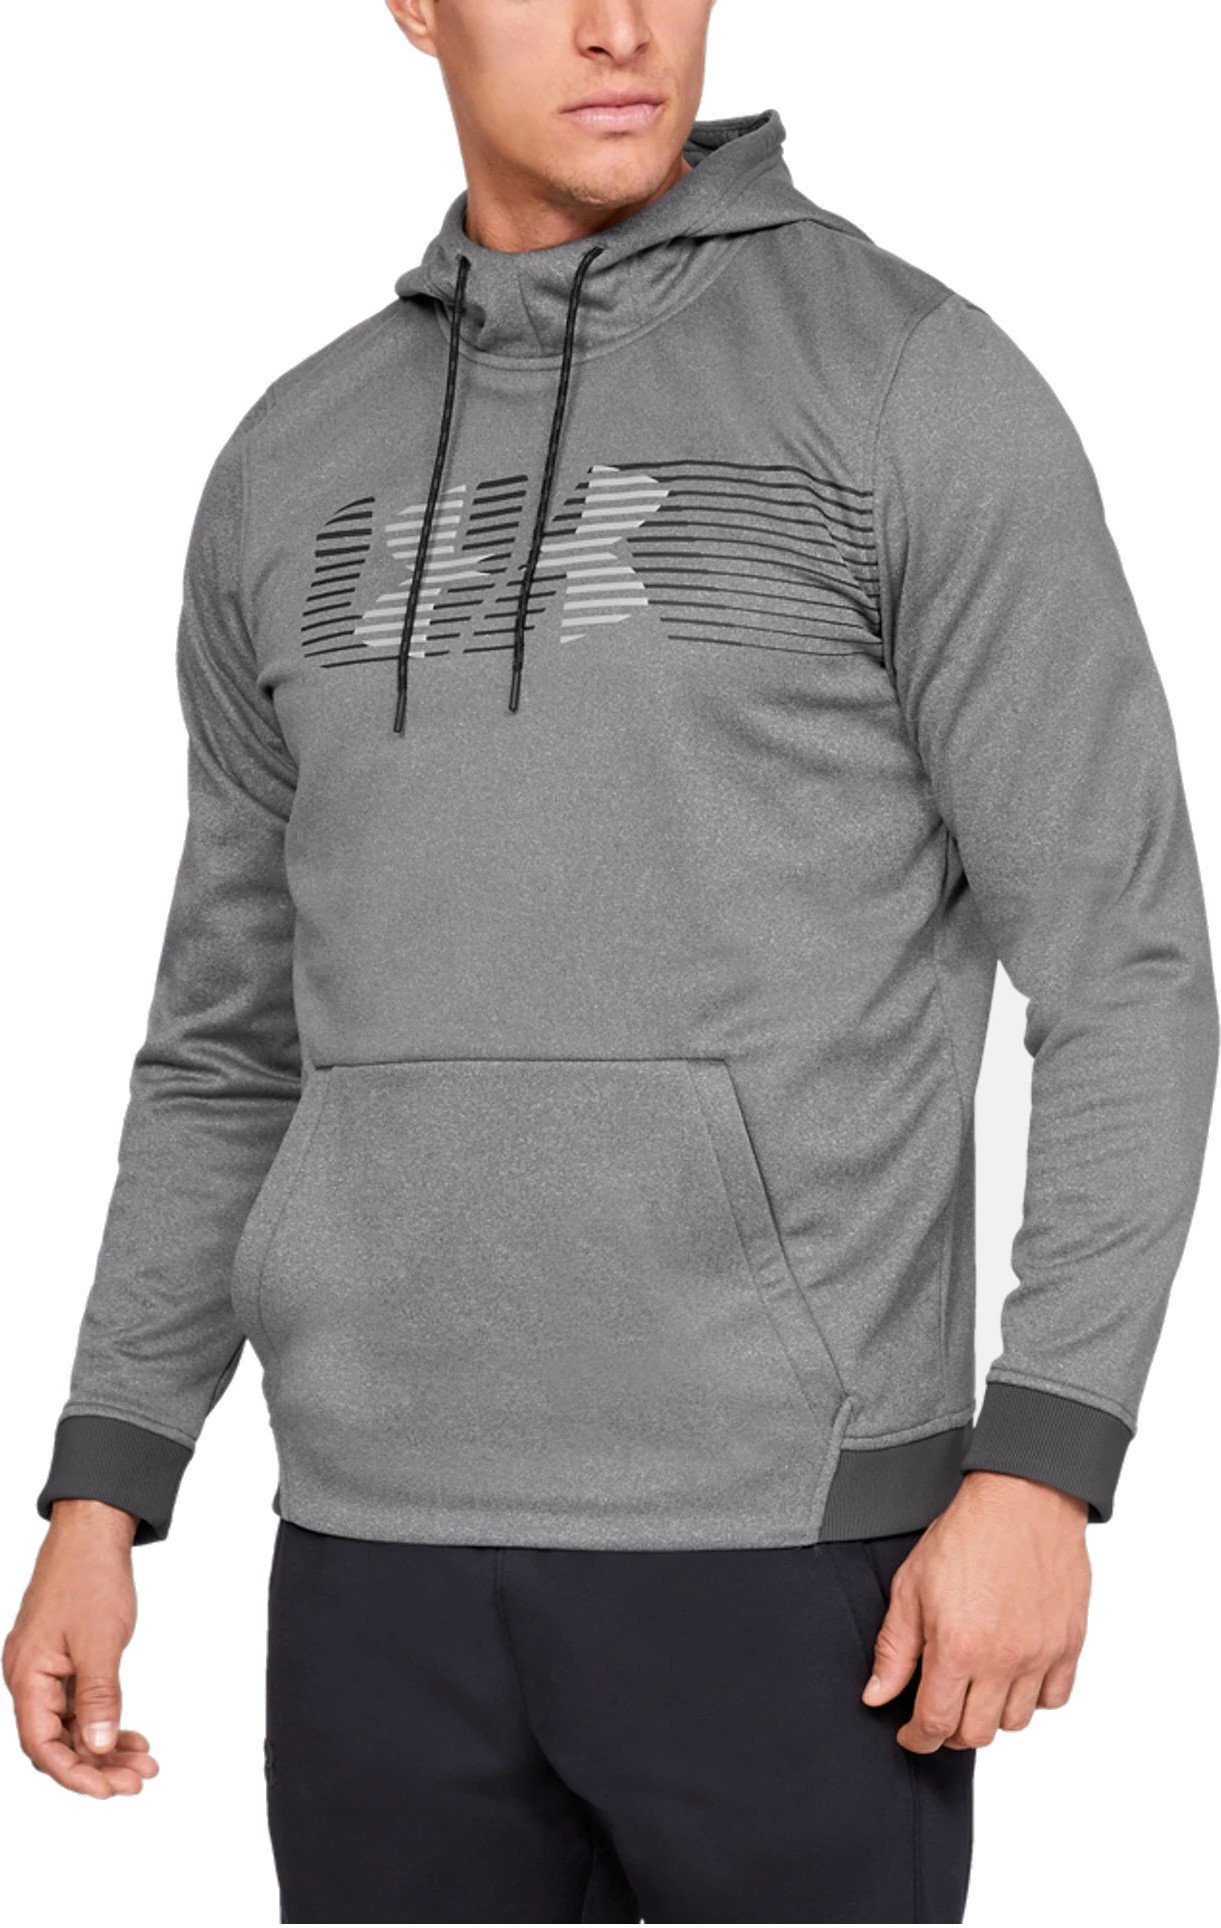 Felpe con cappuccio Under Armour ARMOUR FLEECE SPECTRUM PO HOODIE